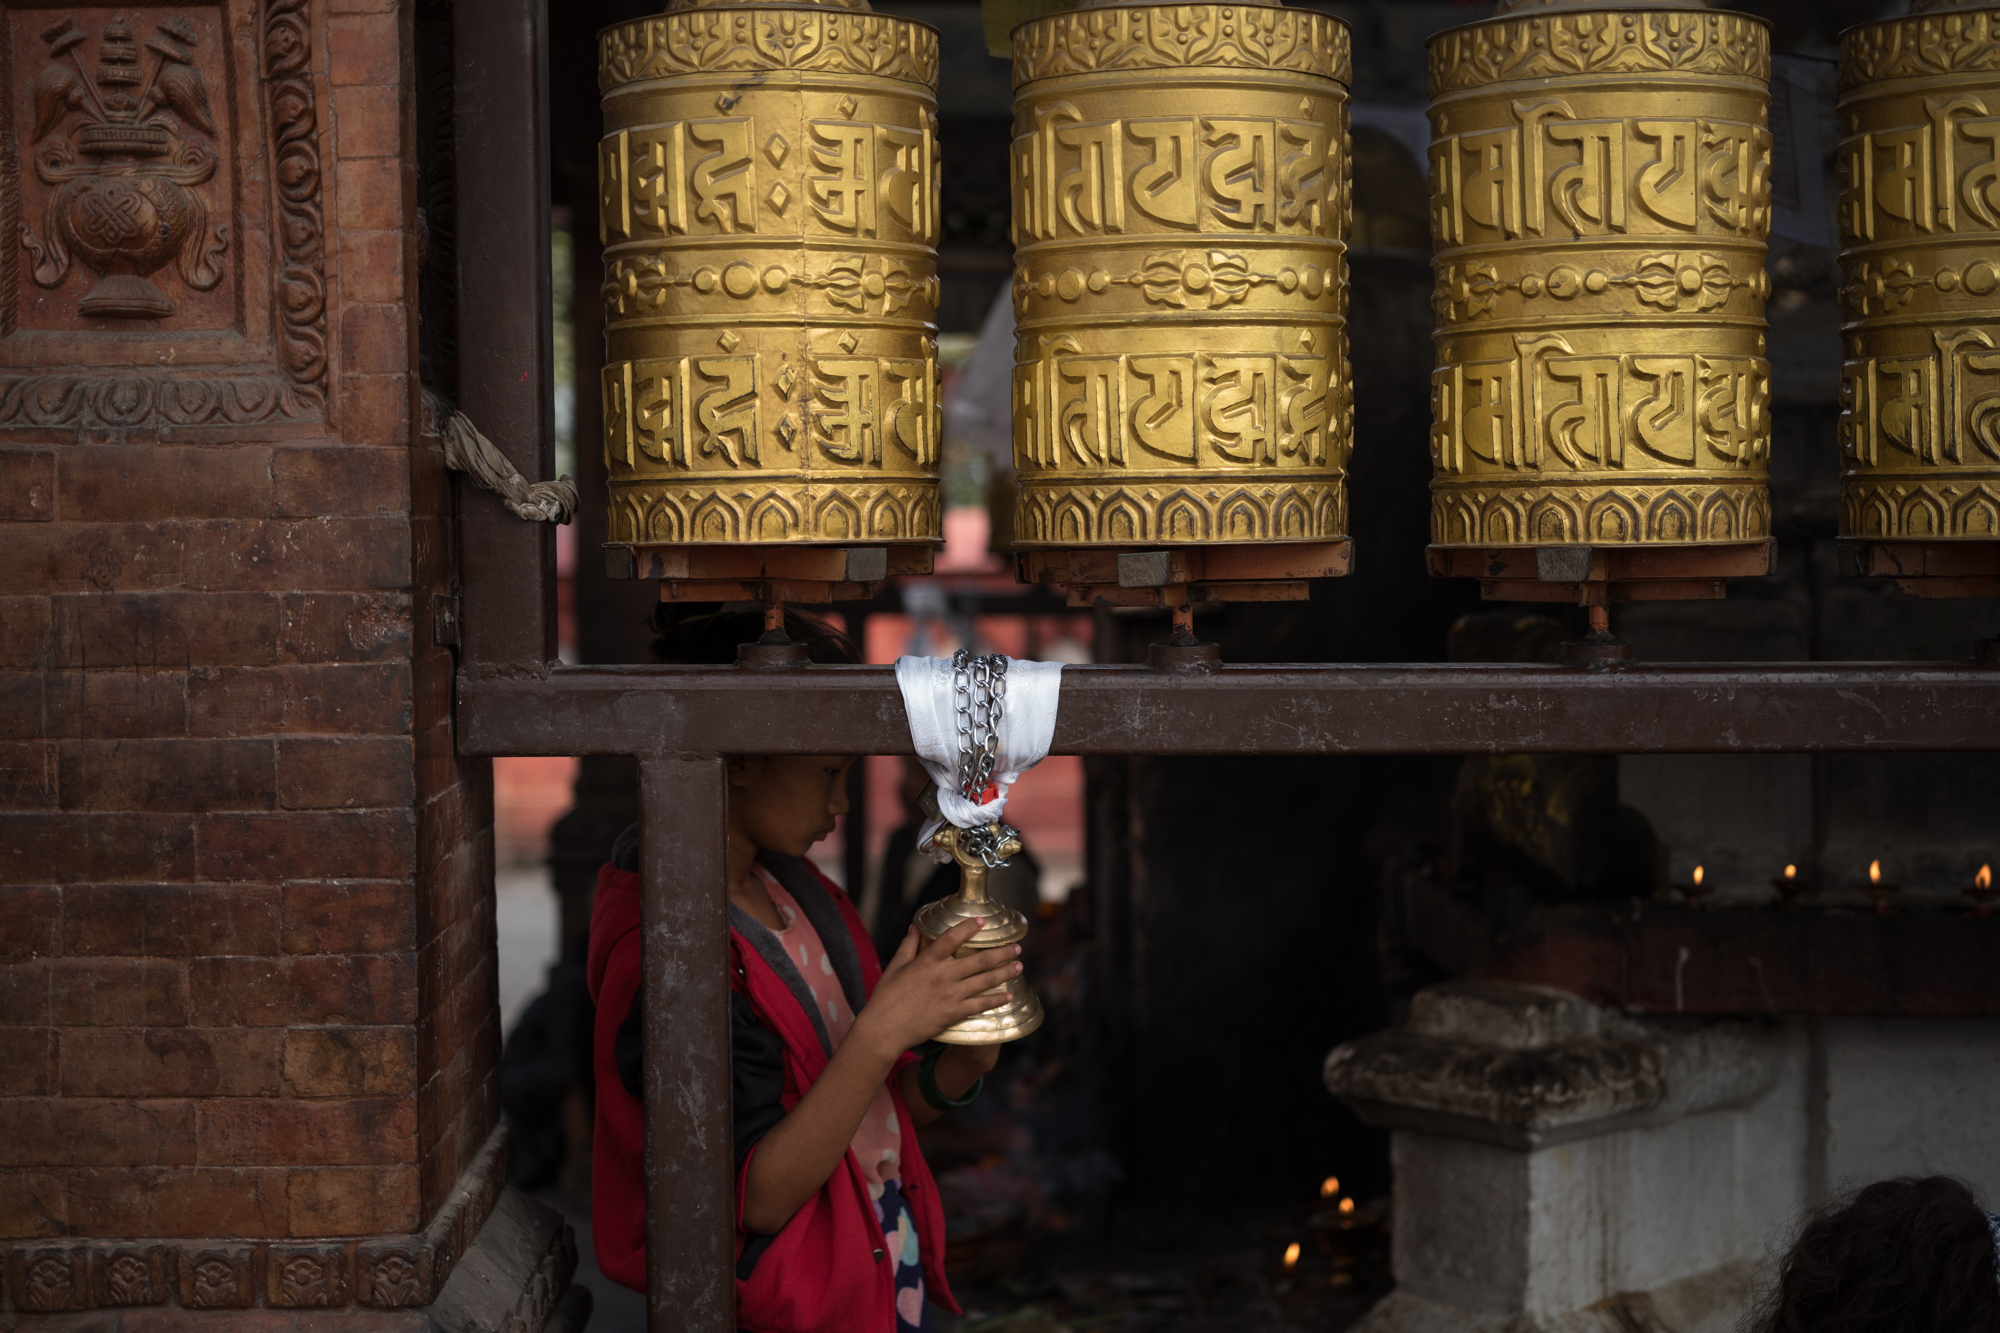 Nepal_Phill O'Leary_11_20181004-L1009454.jpg